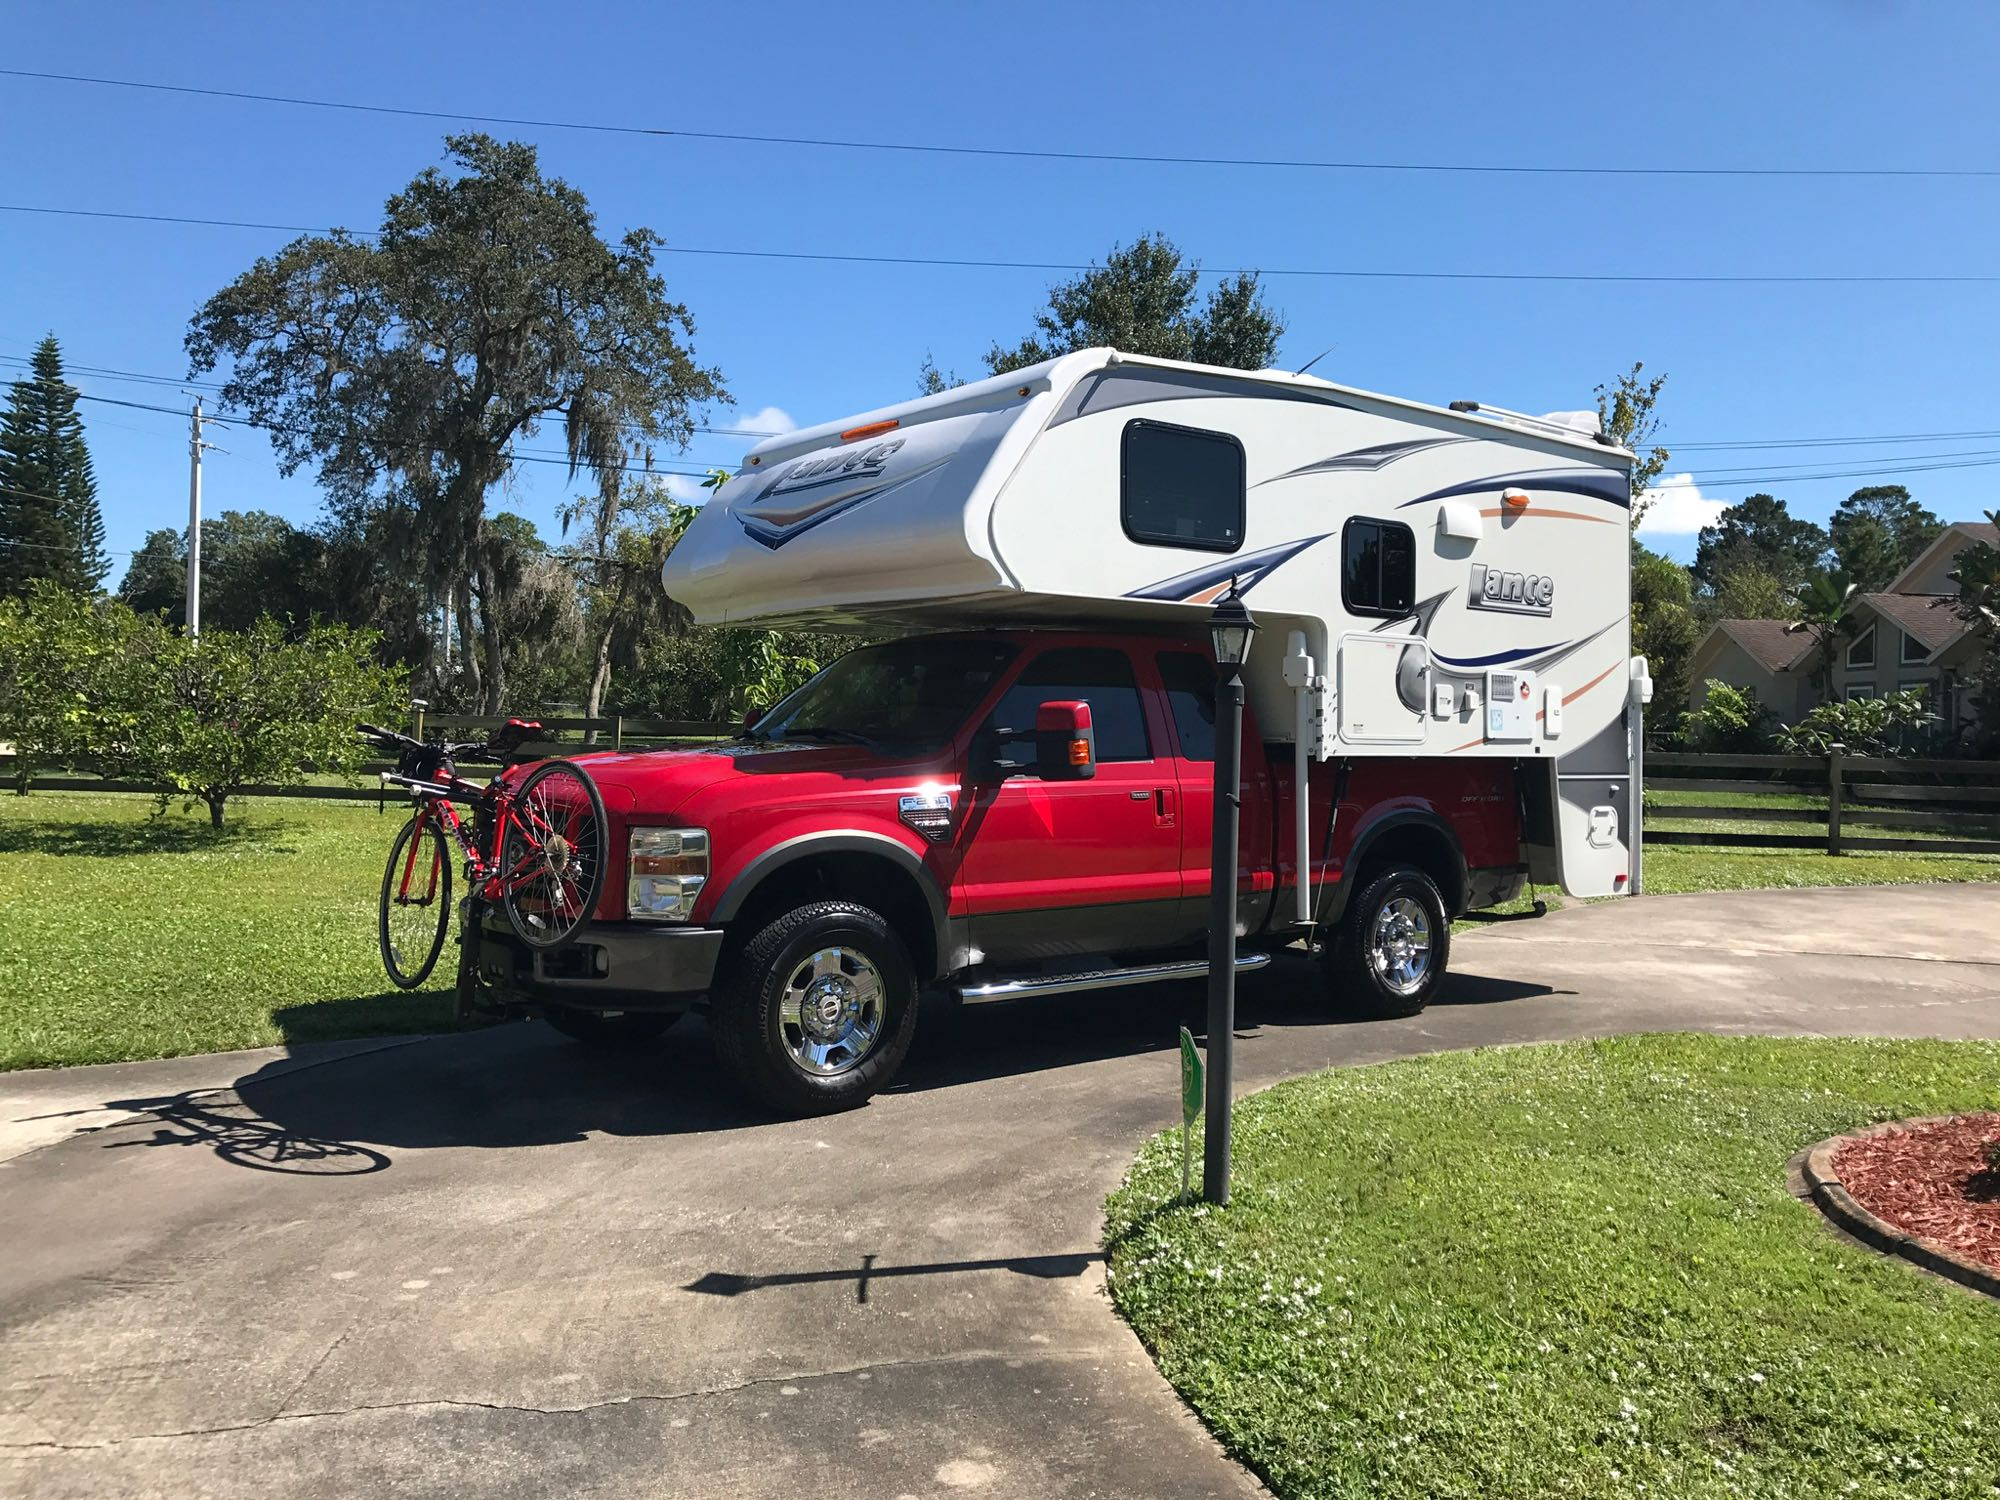 Ready for another trip to Fort wilderness. Lance 855s 2013